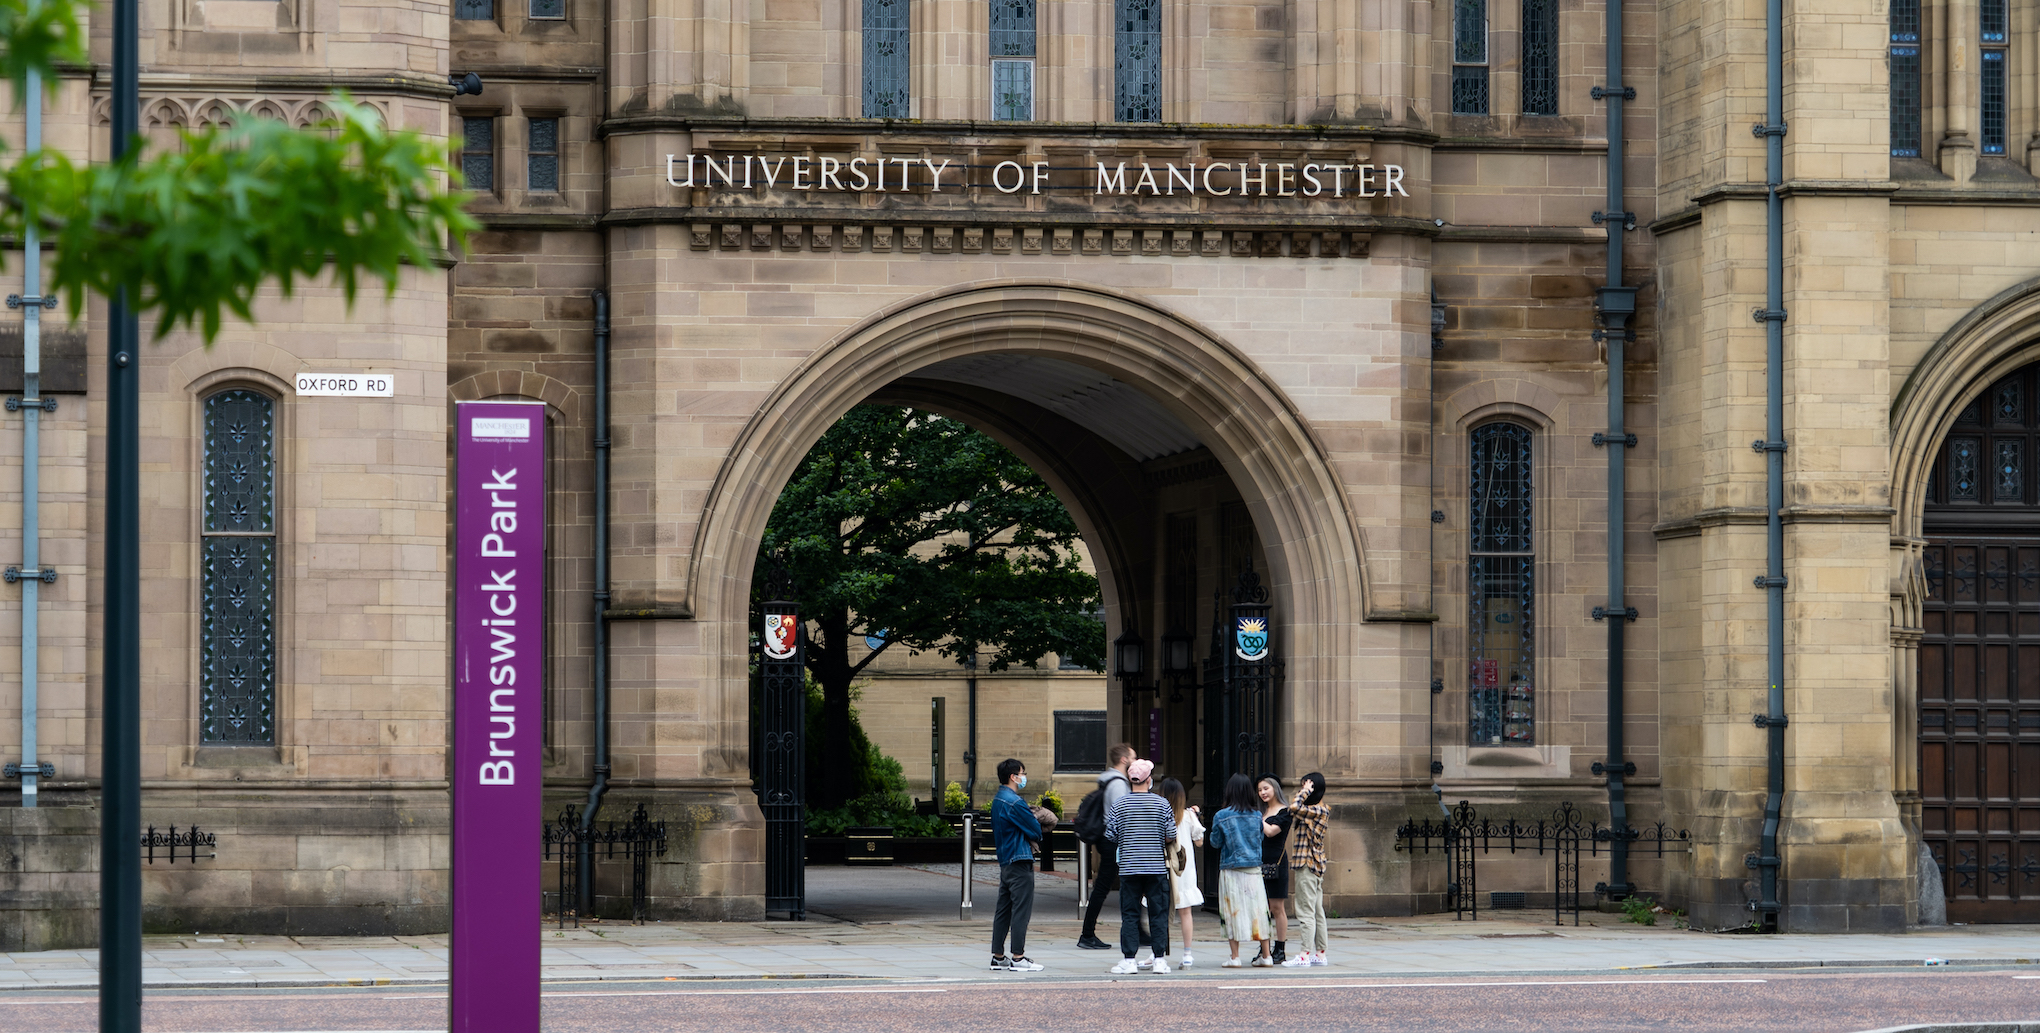 University of Manchester security fence inquiry published